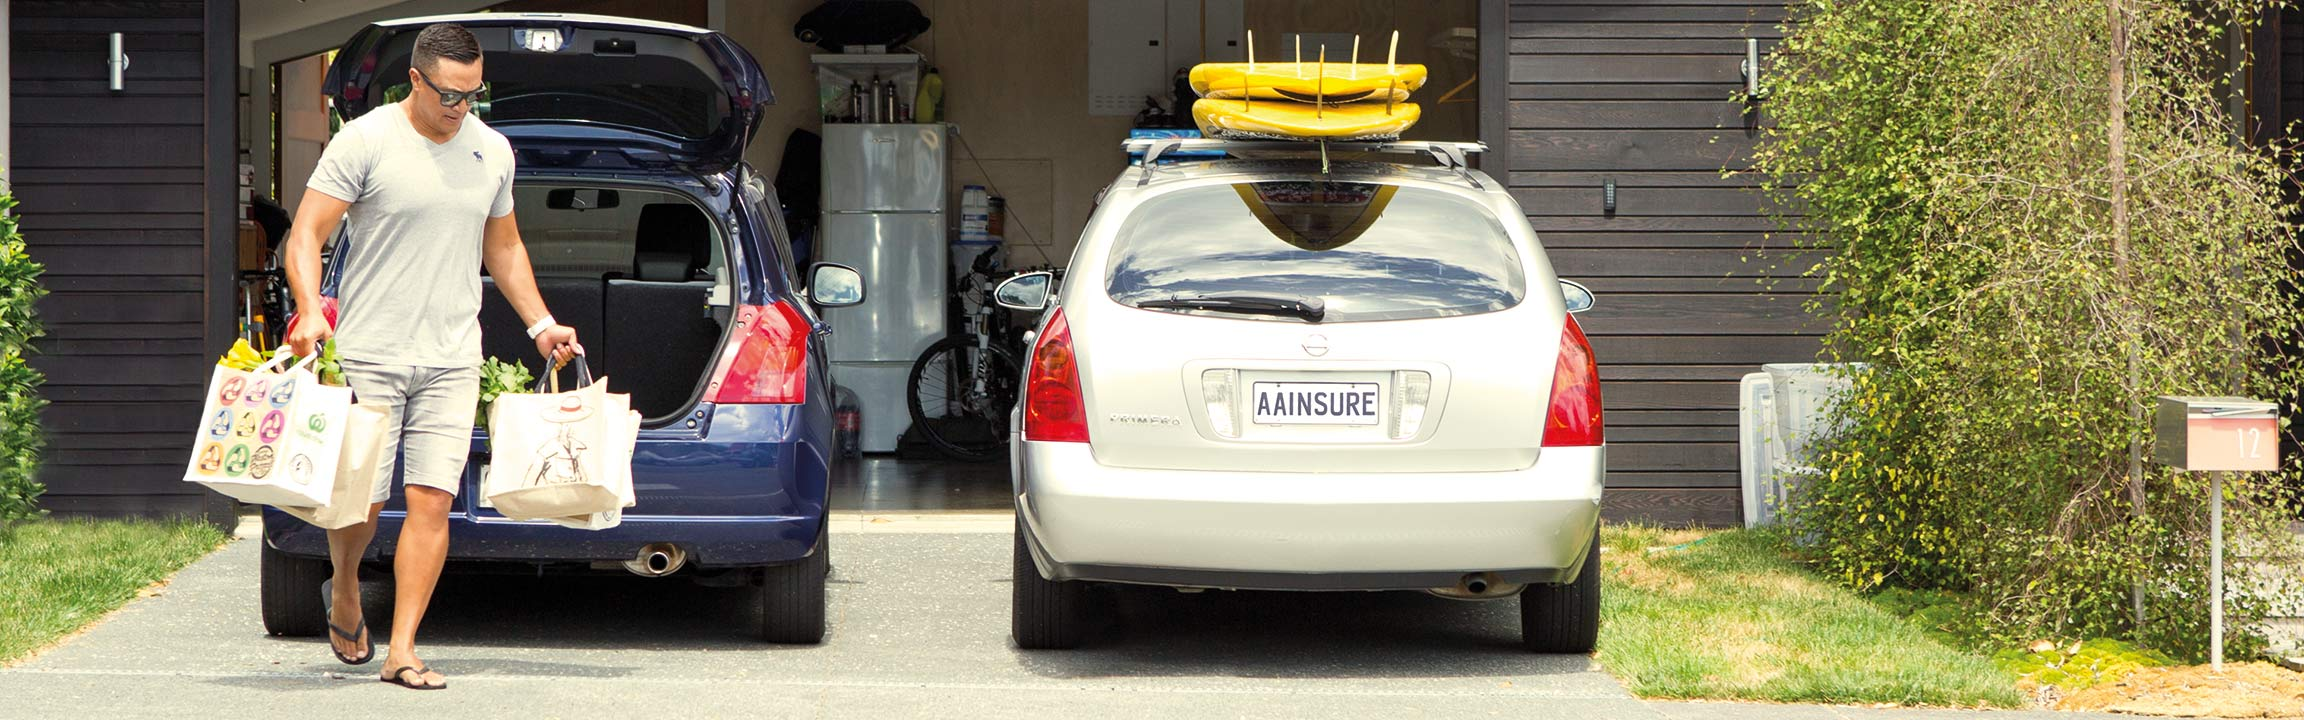 A man carrying groceries out of his car parked at his home outside the garage